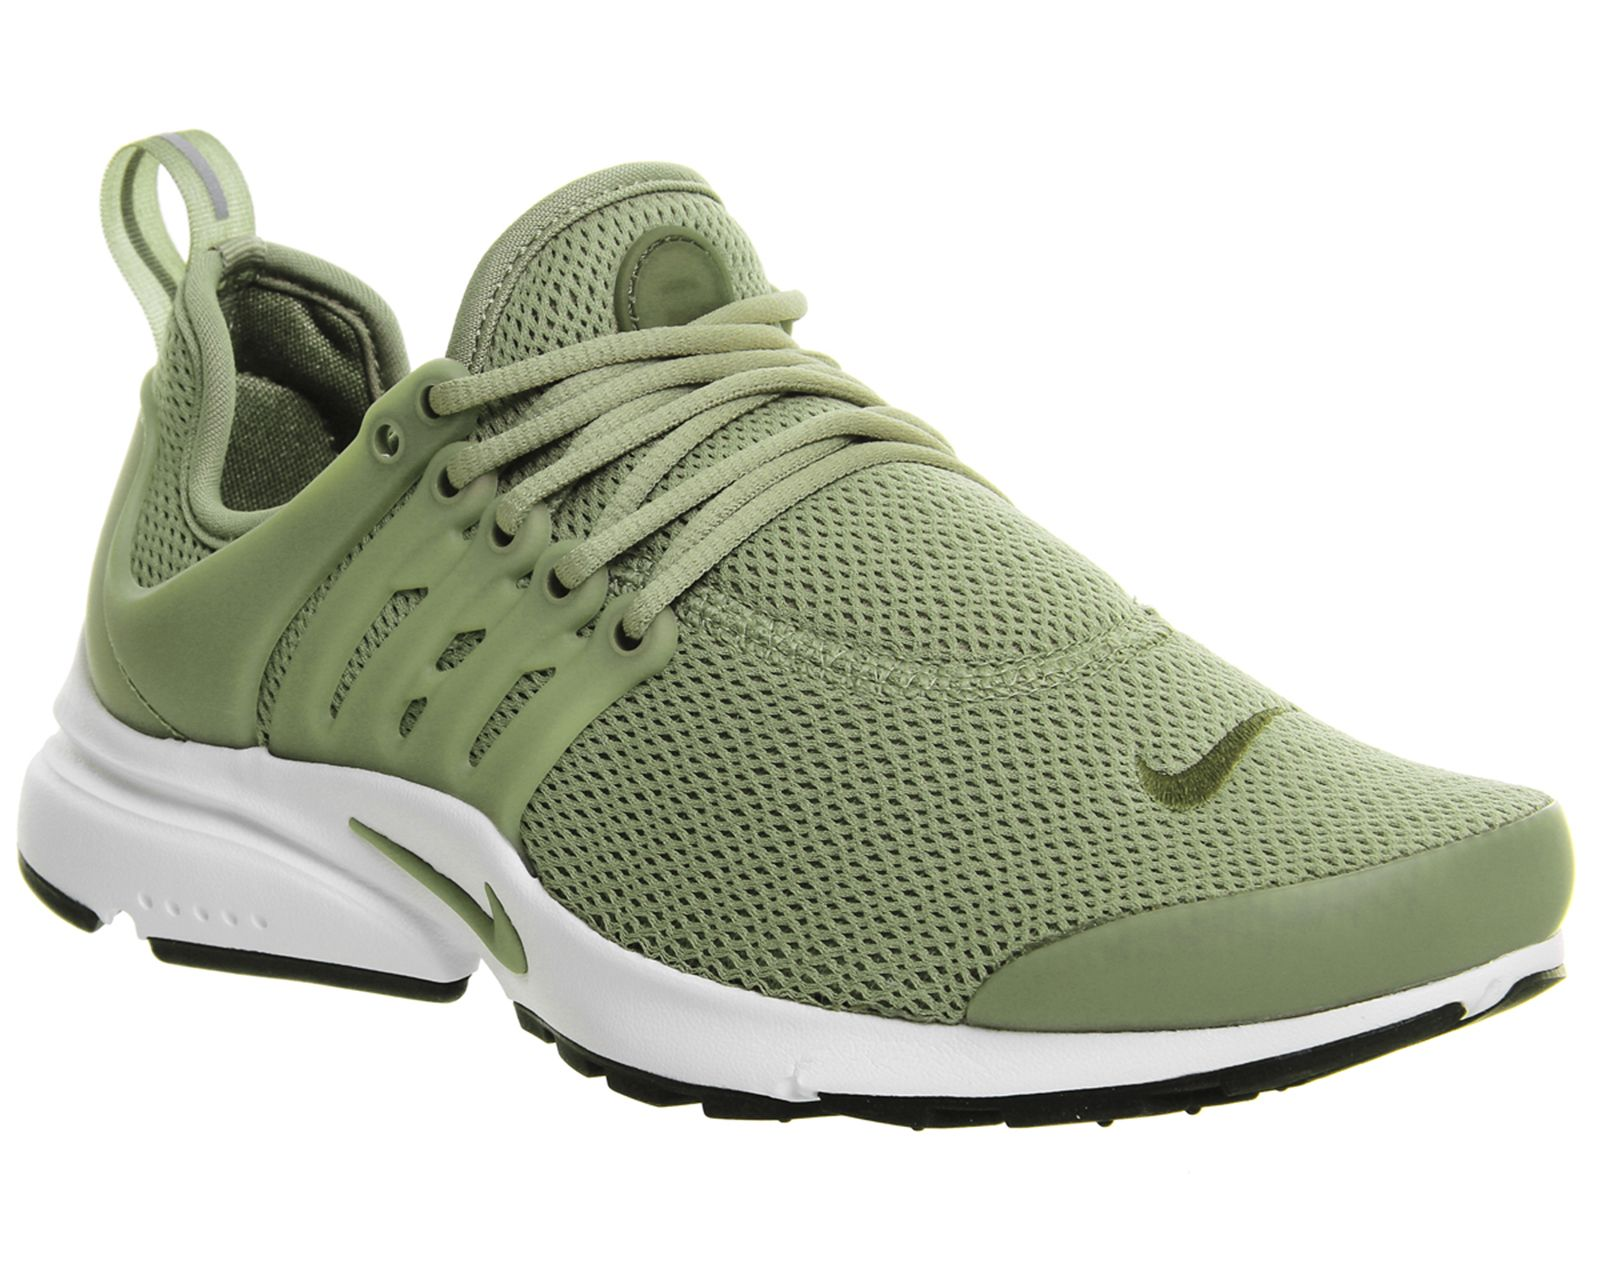 Nike Air Presto Womens Trainers Palm Green   Hers trainers Sports ShoesNike